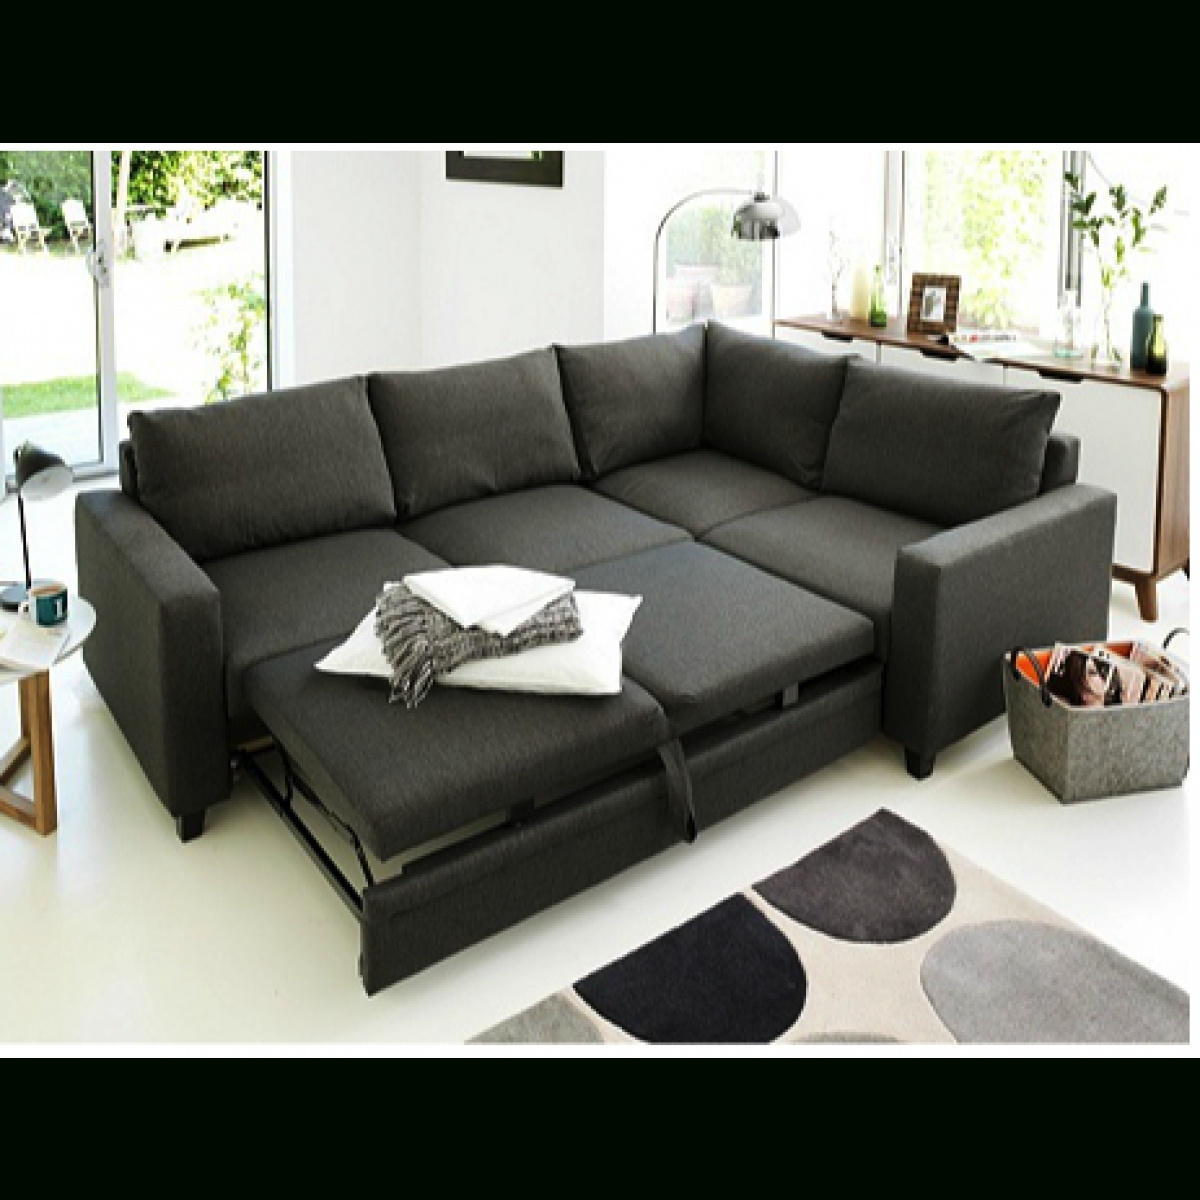 Hygena Seattle Right Hand Corner Sofa Bed - Charcoal. - Furnico pertaining to Corner Couch Bed (Image 22 of 30)